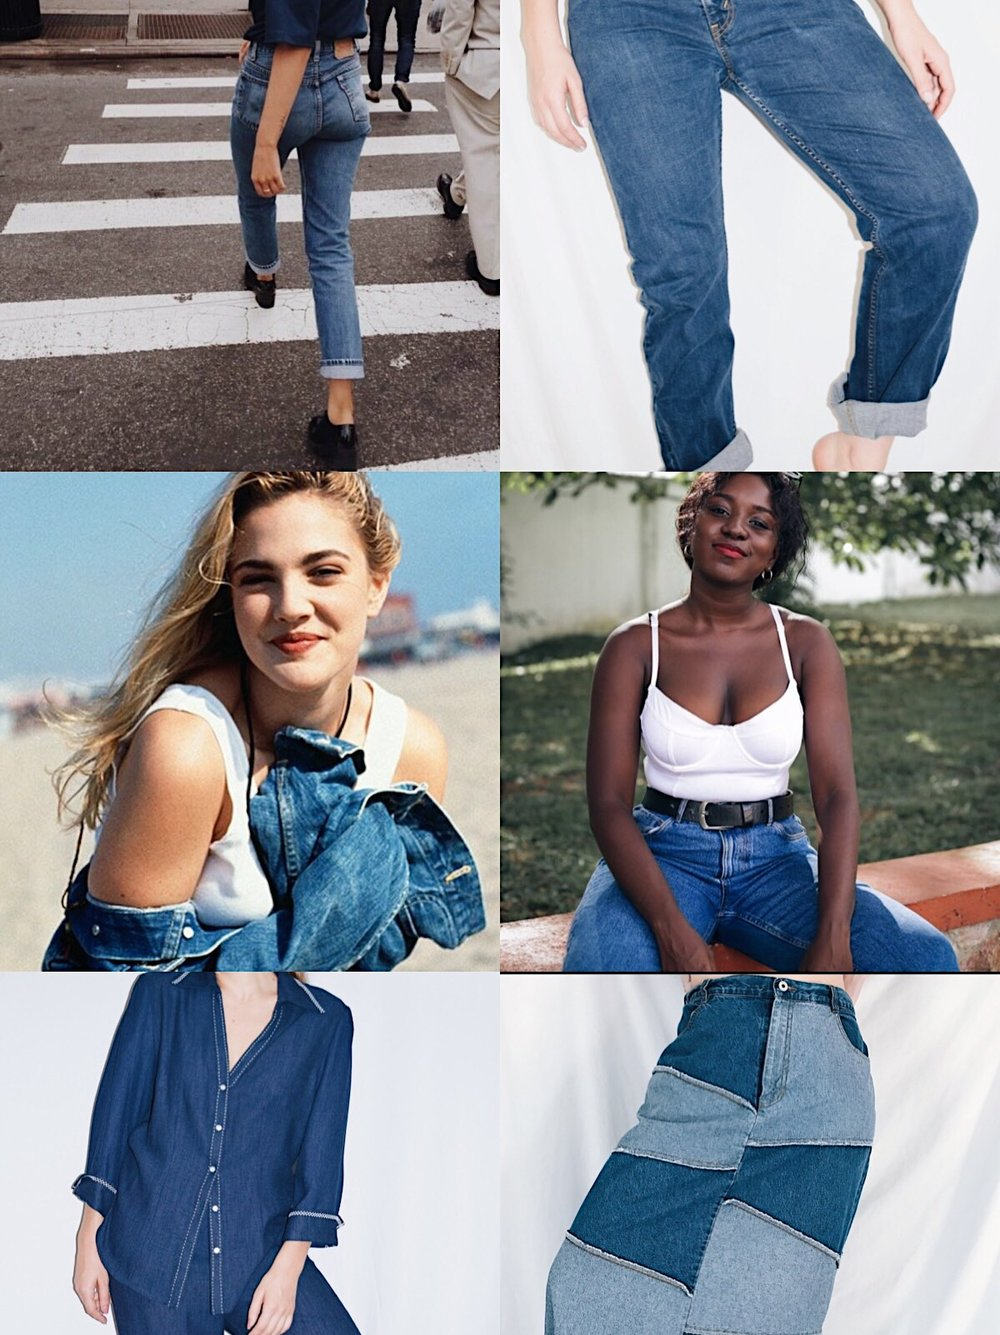 This is a denim moodboard if I ever saw one